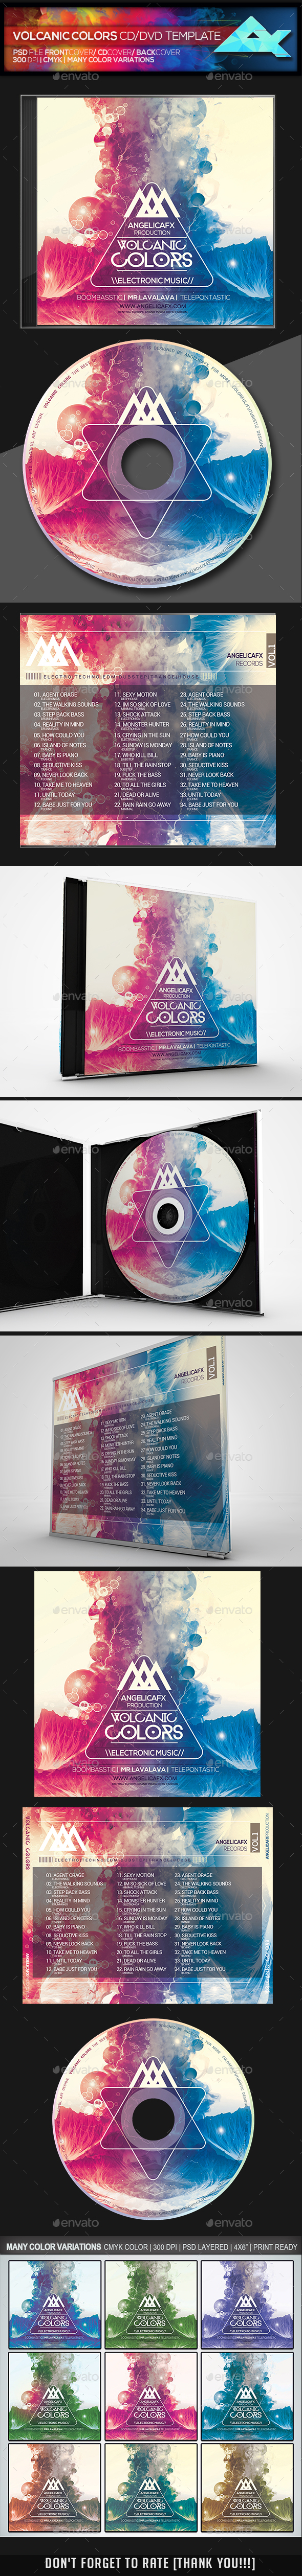 Volcanic Colors CD/DVD Template - CD & DVD Artwork Print Templates